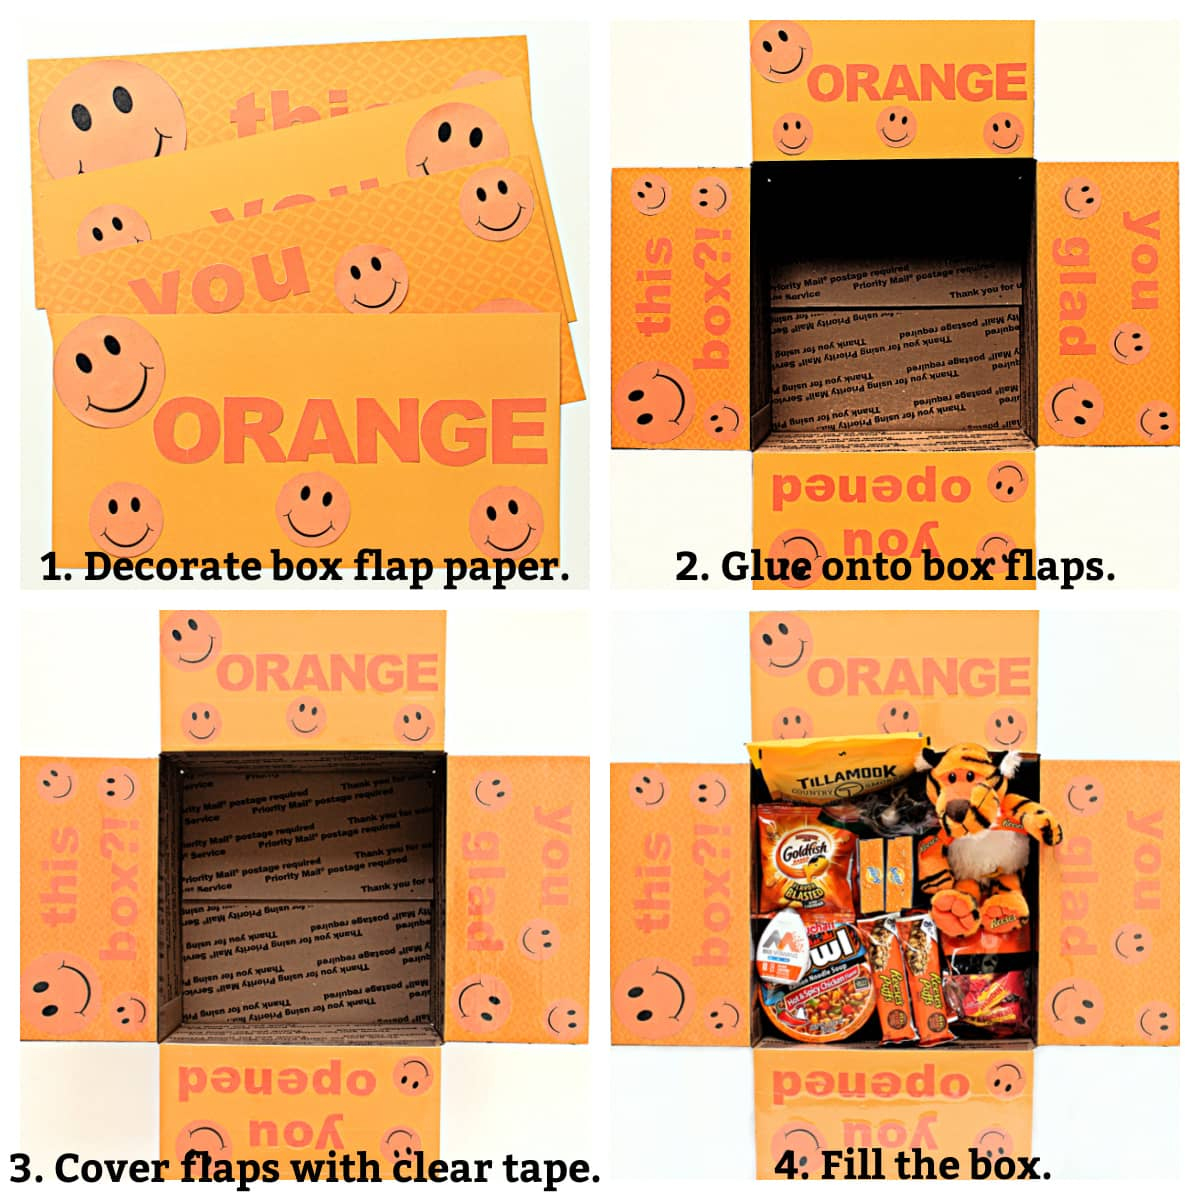 Decorating instructions; decorate paper, glue paper on box flaps, cover with tape, fill the box.